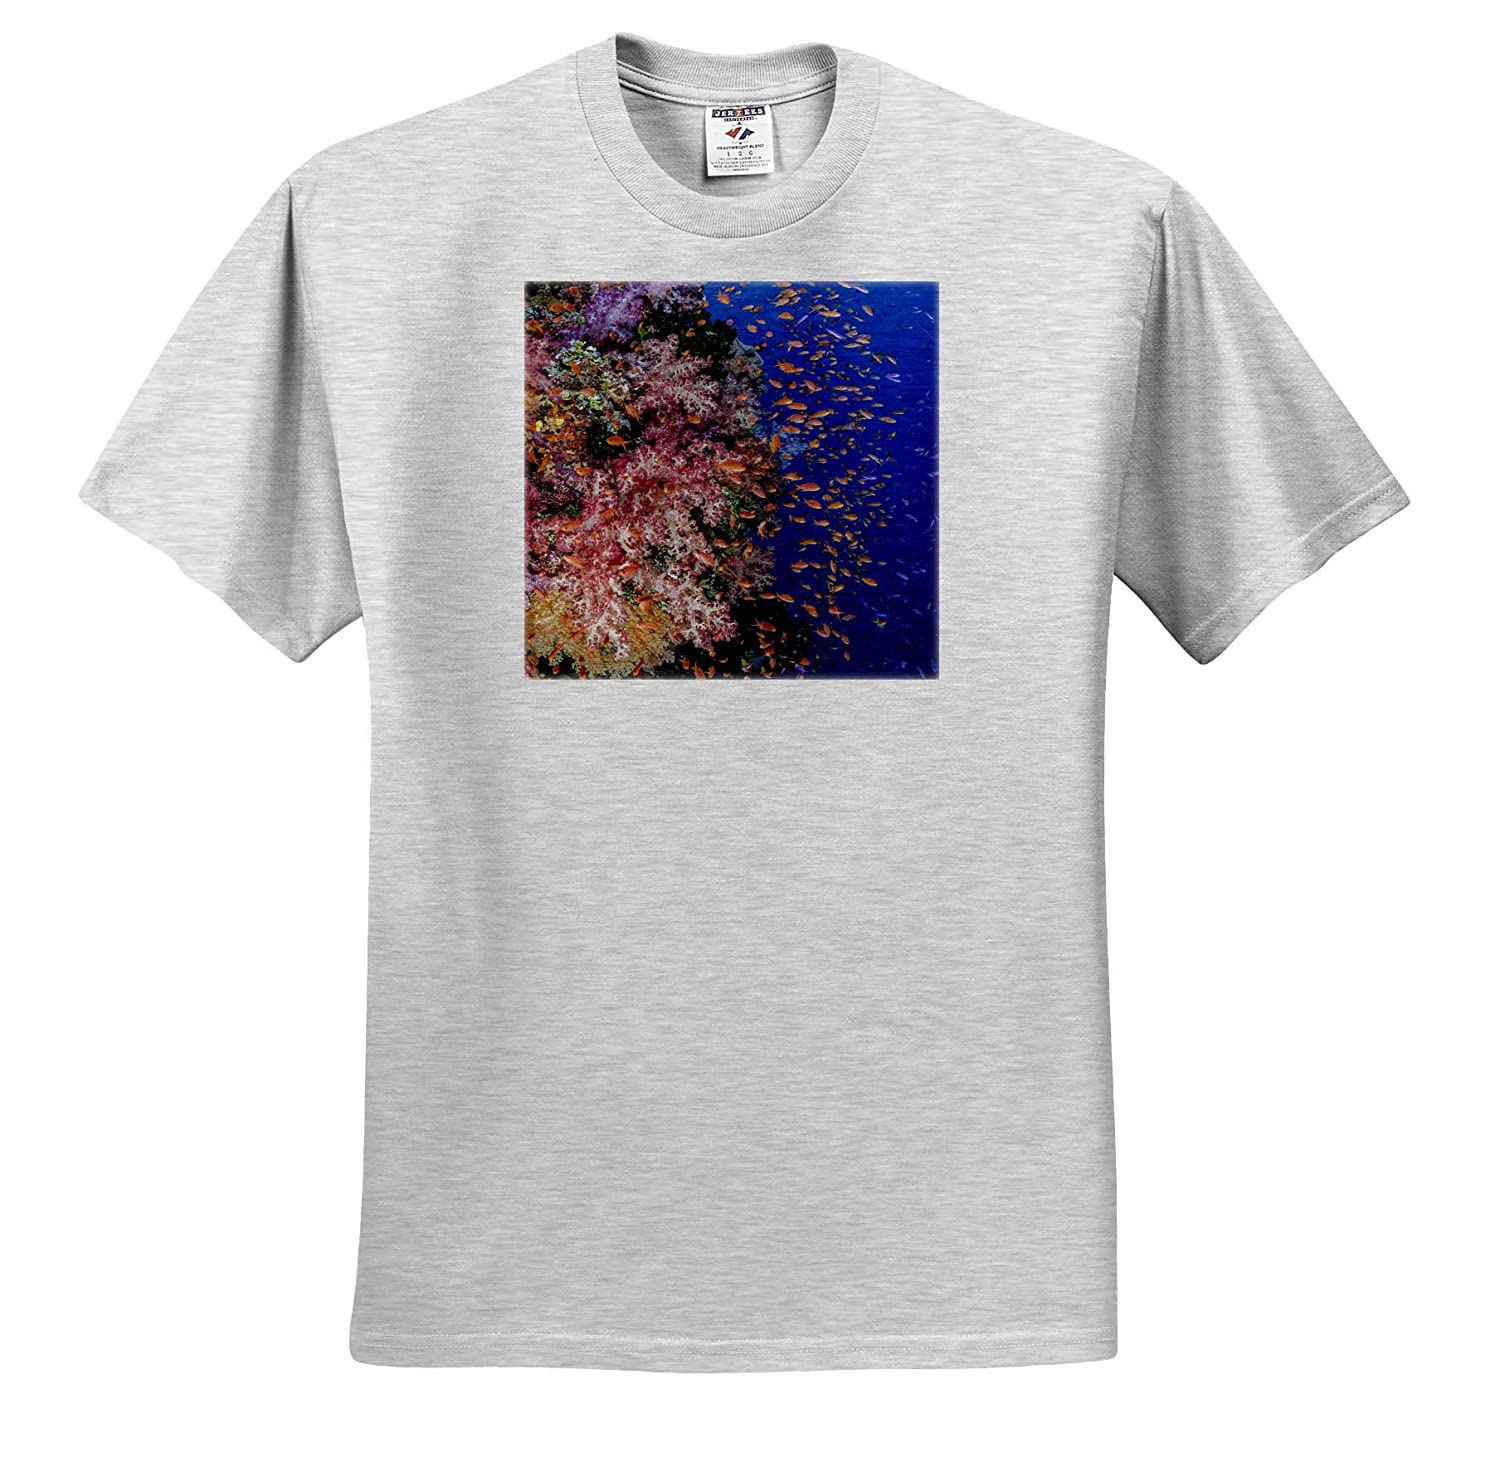 Fiji Underwater - Adult T-Shirt XL 3dRose Danita Delimont Reef with Coral and Anthias ts/_314016